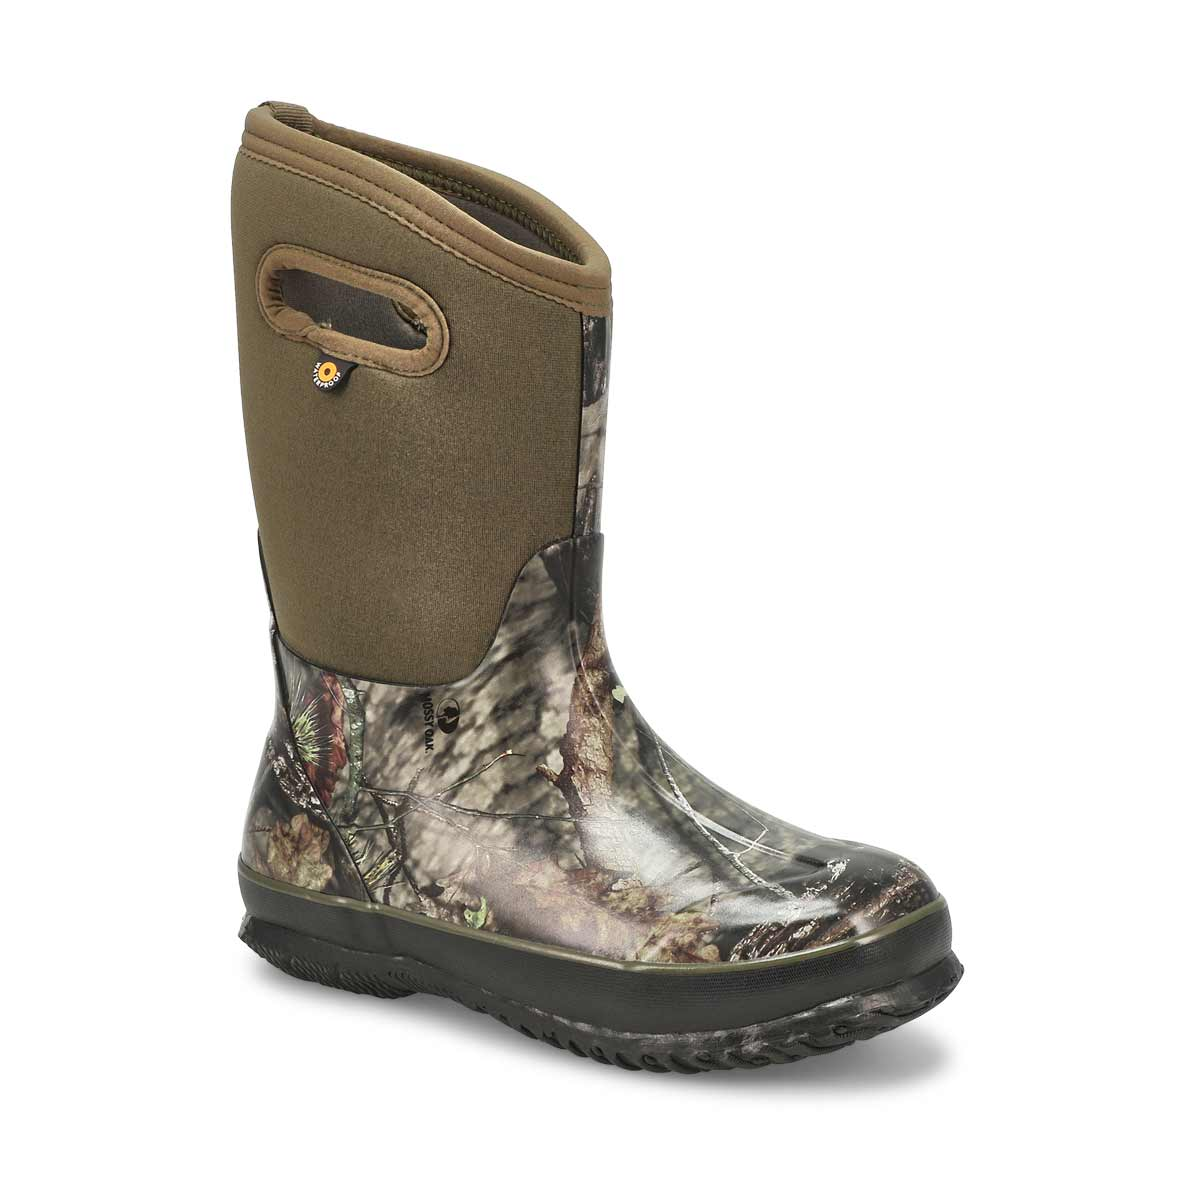 Boys' CLASSIC MOSSY OAK tall green winter boots